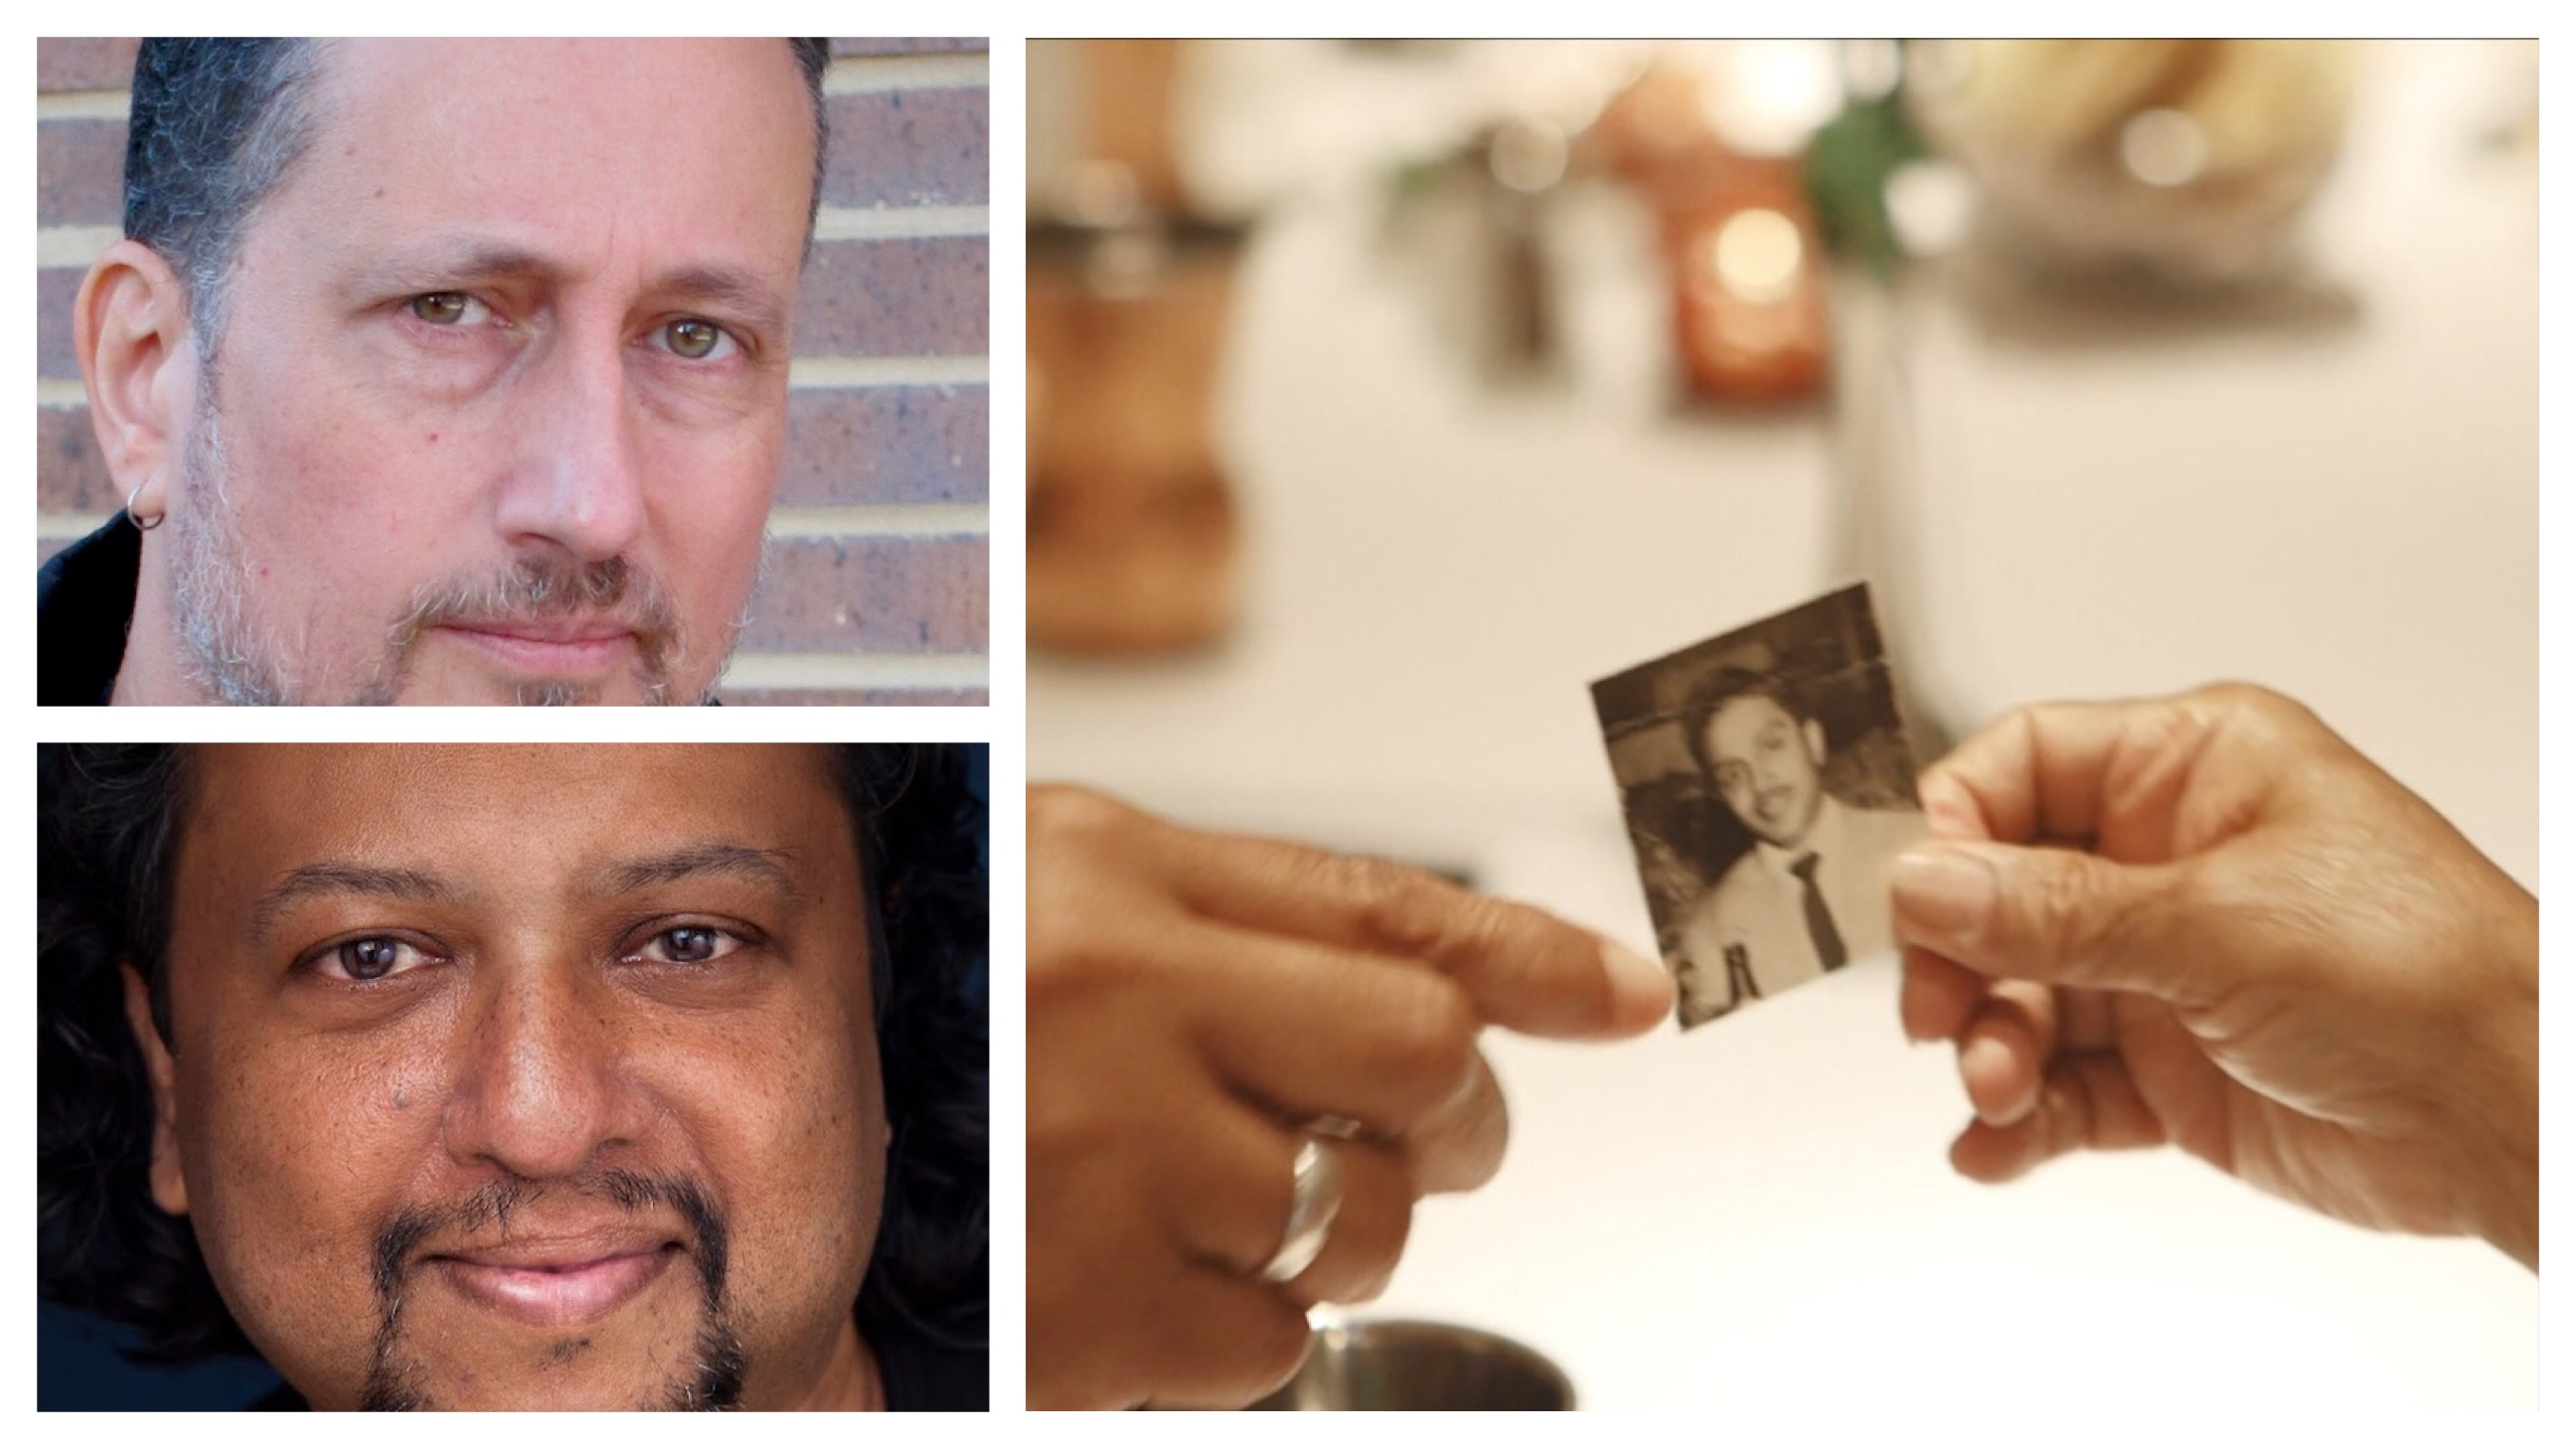 An image of a mixed race, middle aged South Asian man on the top left and South Asian man with shoulder-length wavy hair on the bottom right; on the right is an image of two hands holding an old photograph.